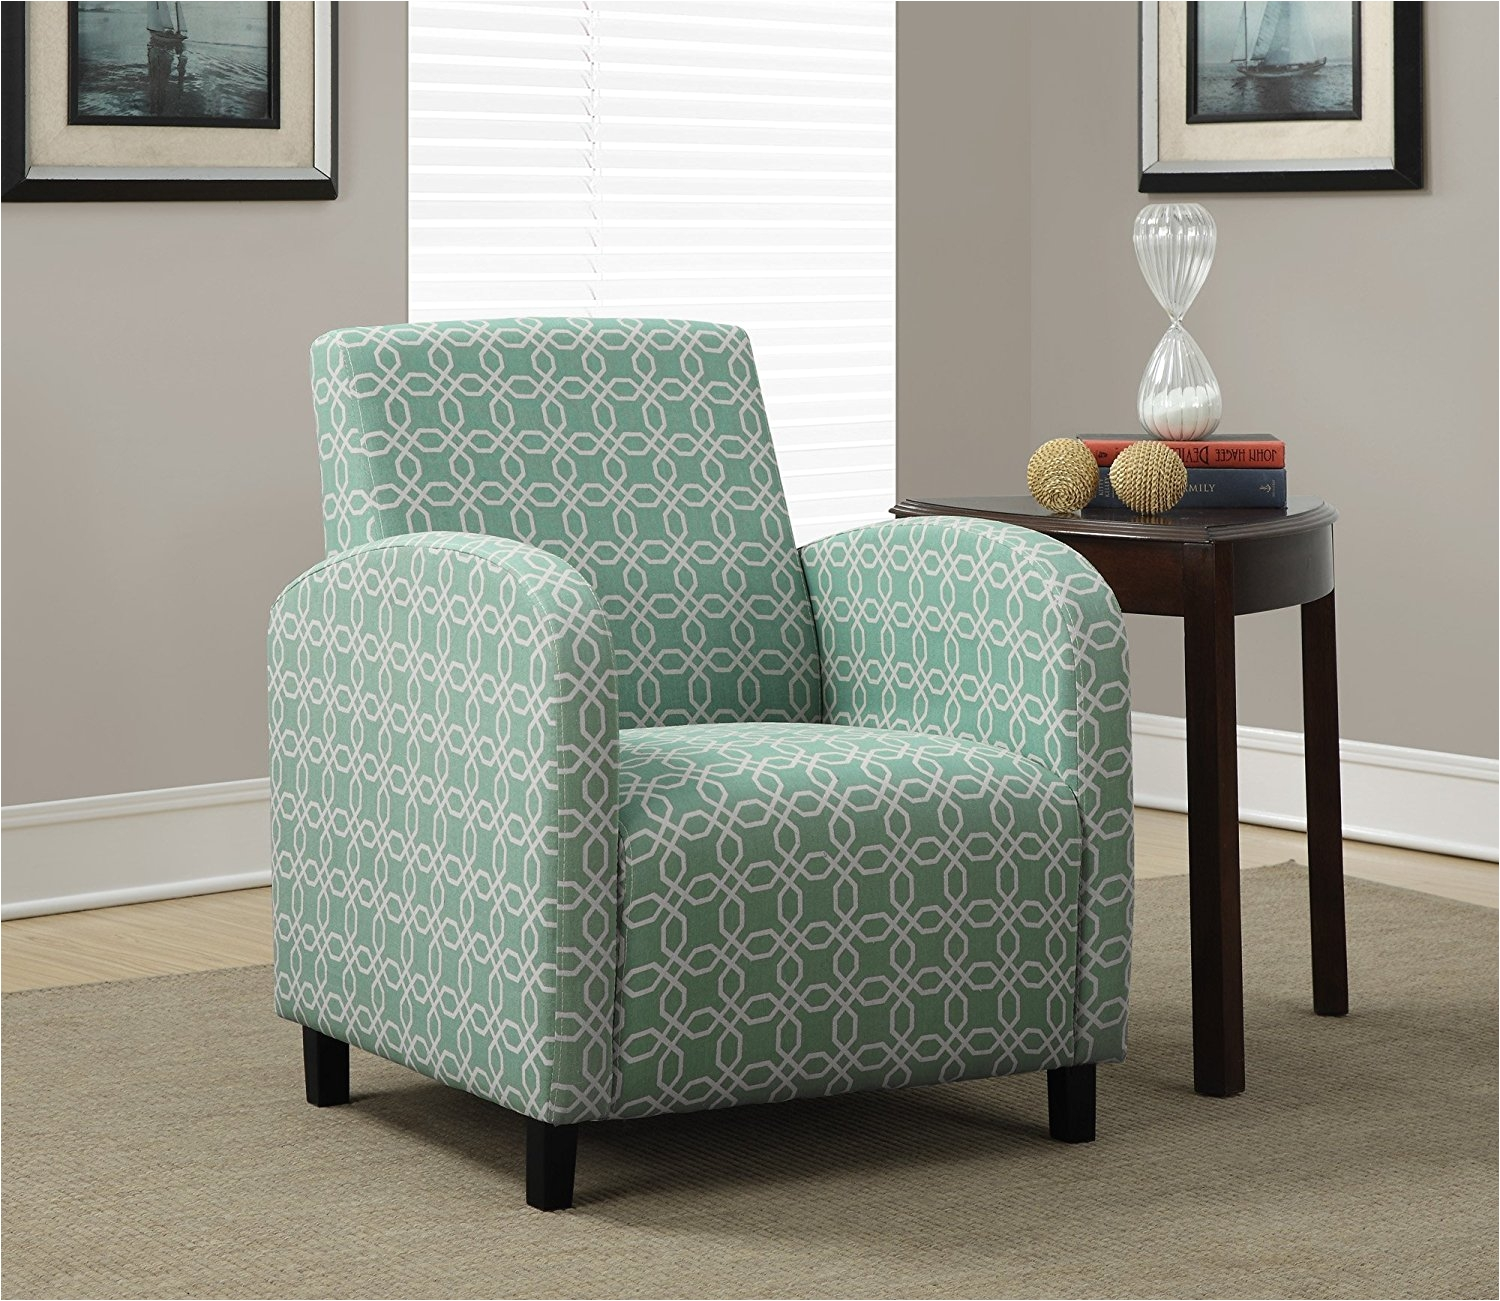 full size of chair swoop arm accent fuschia teal bedroom gold color cheap chairs living spaces